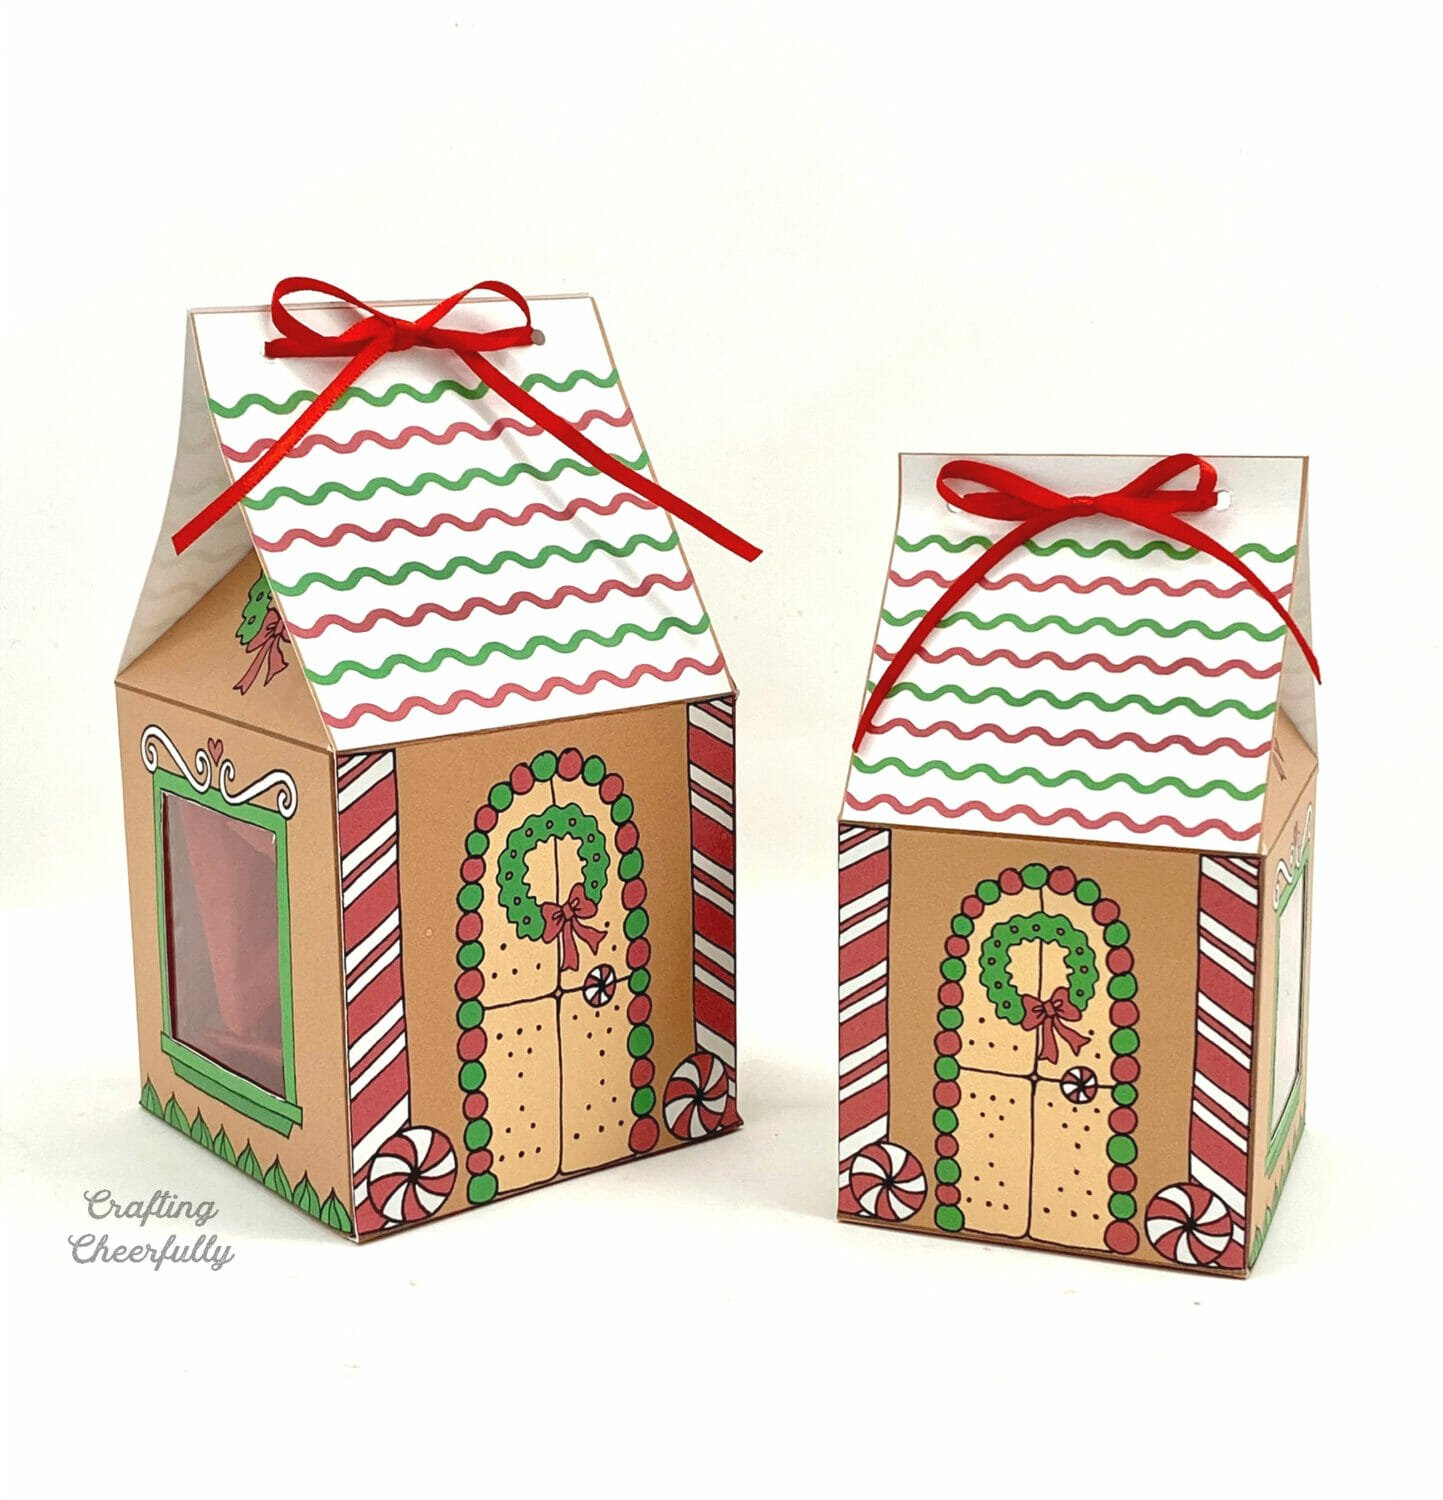 Two gingerbread house treat boxes sit next to each other.